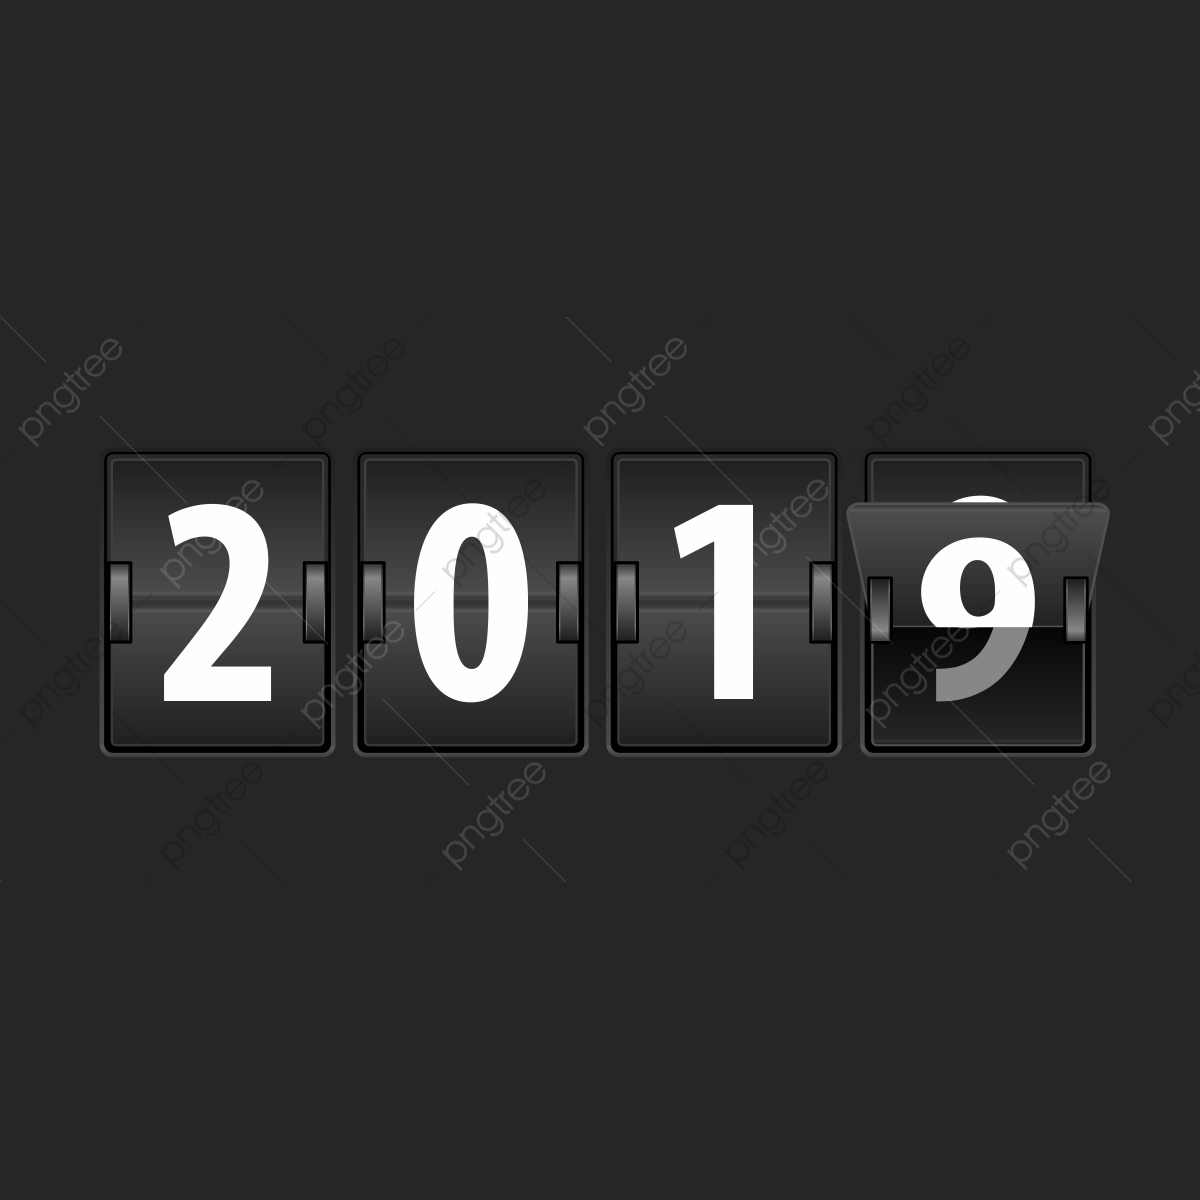 Flip Clock 2019, 2019, New Year, New PNG and Vector with Transparent